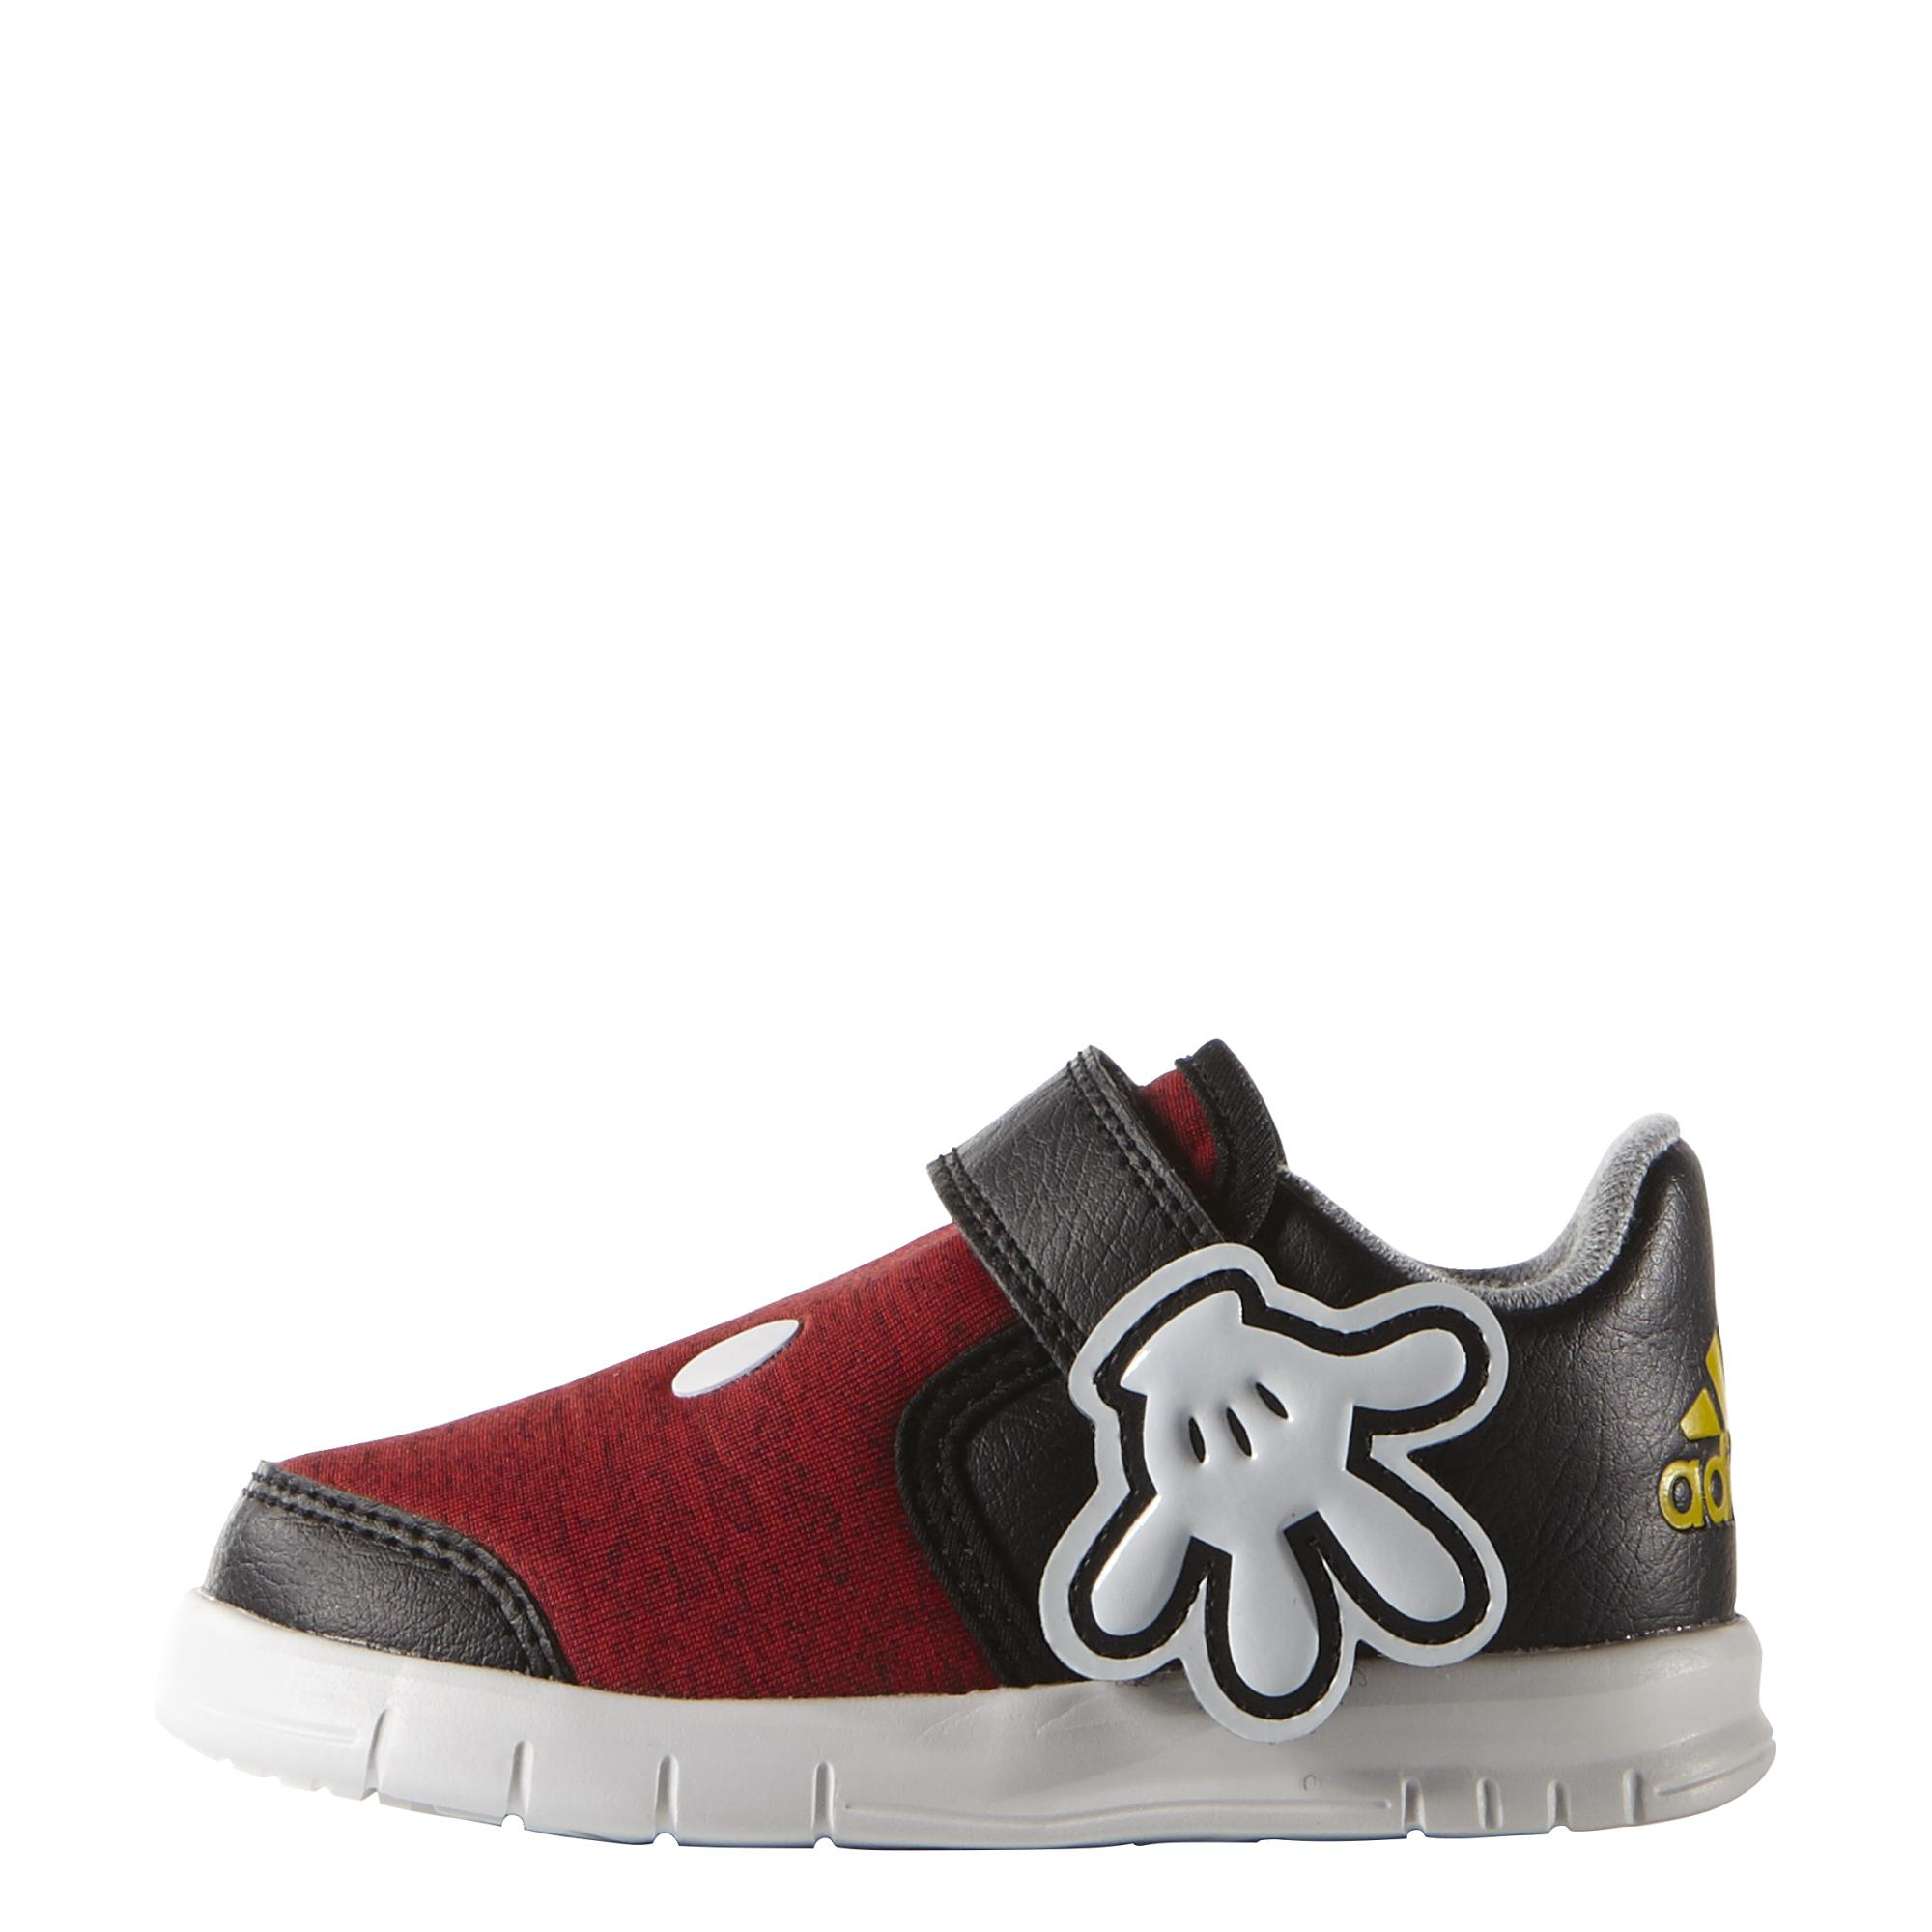 zapatillas de mickey mouse adidas